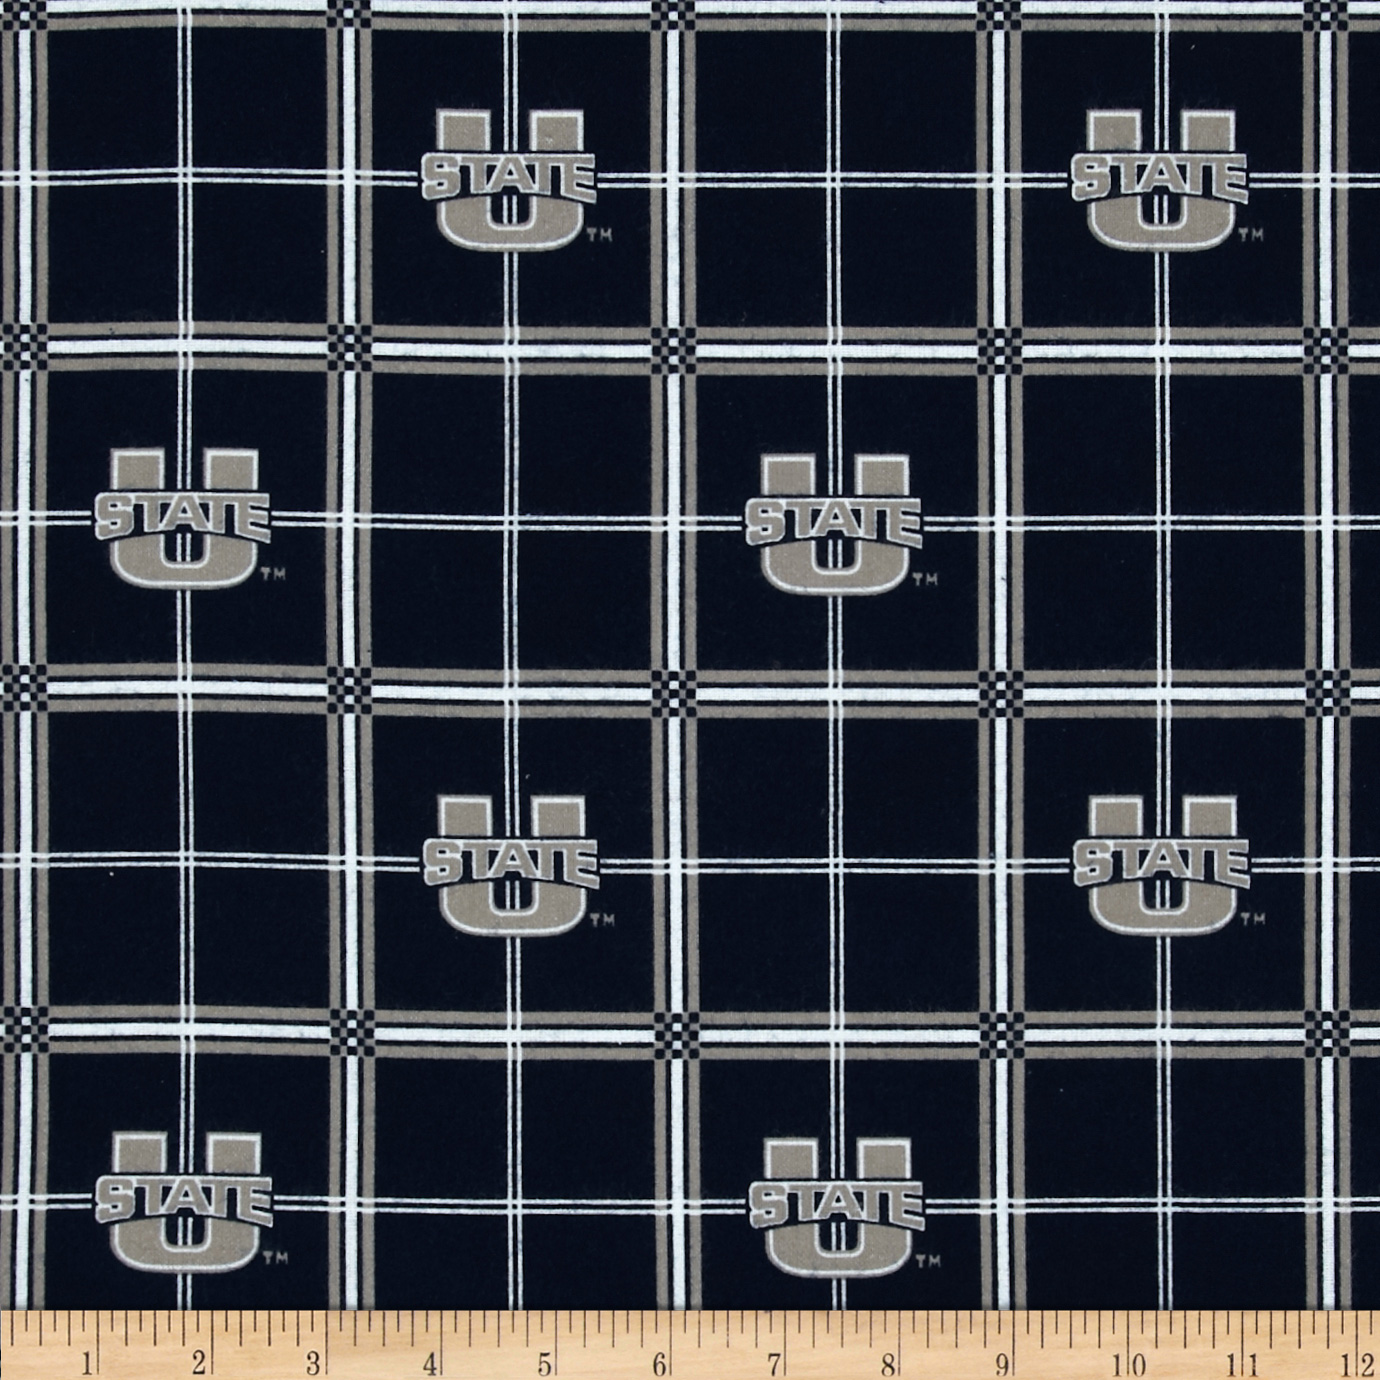 Collegiate Cotton Broadcloth Utah State University Plaid Black